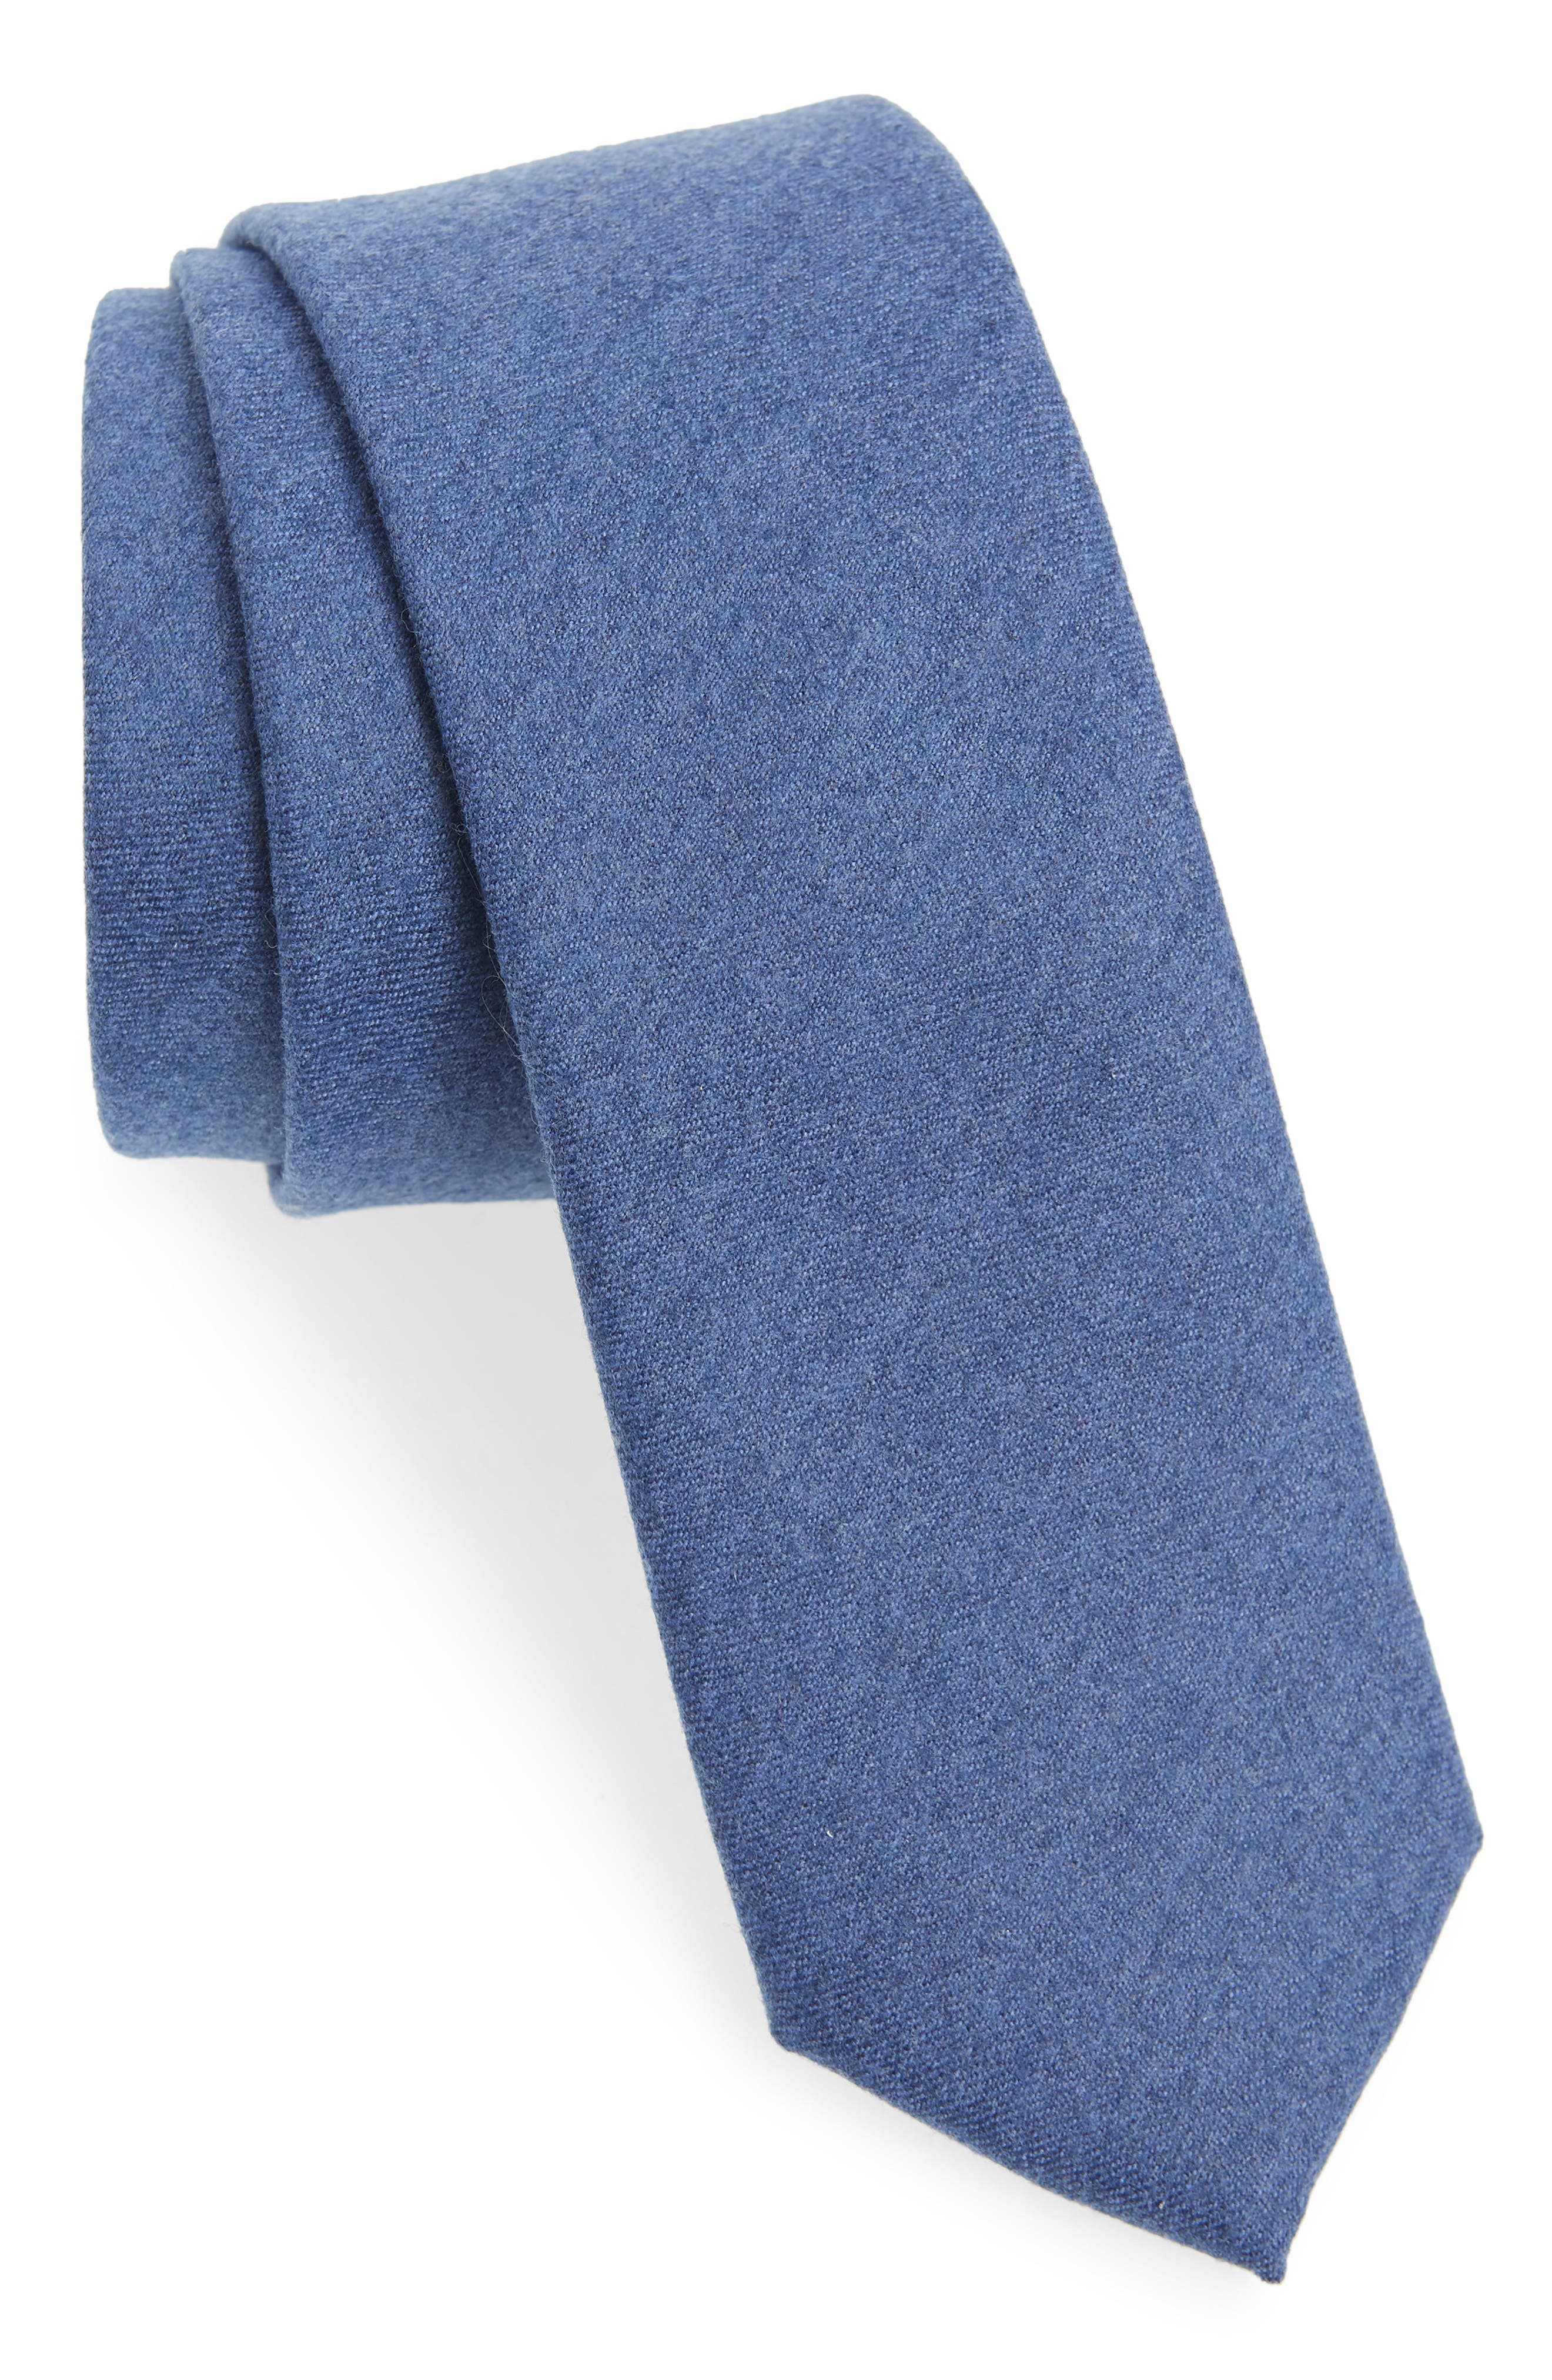 Togna Solid Wool Tie,                         Main,                         color, BLUE